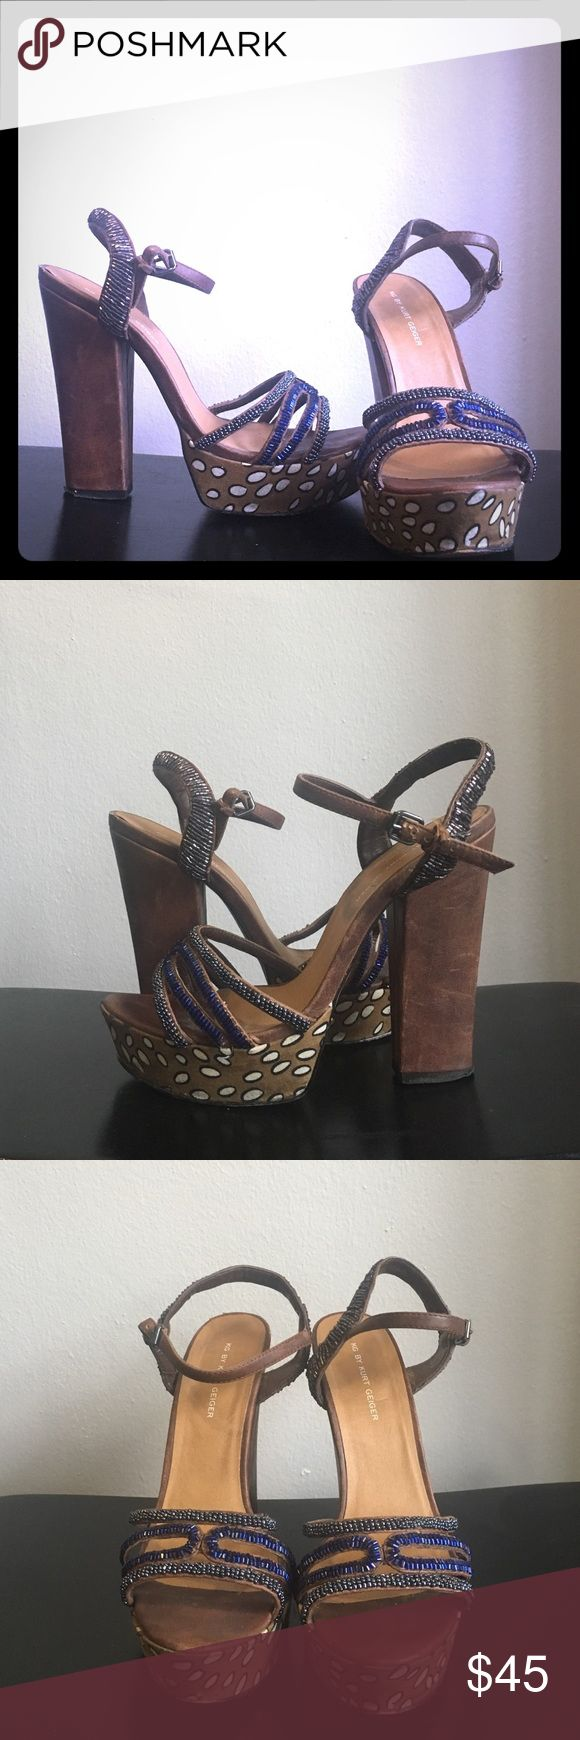 KG by Kurt Geiger heels size 37 Size 37 used heels. Some wear-and-tear on the beading and clasp leather. KG by Kurt Geiger Shoes Heels